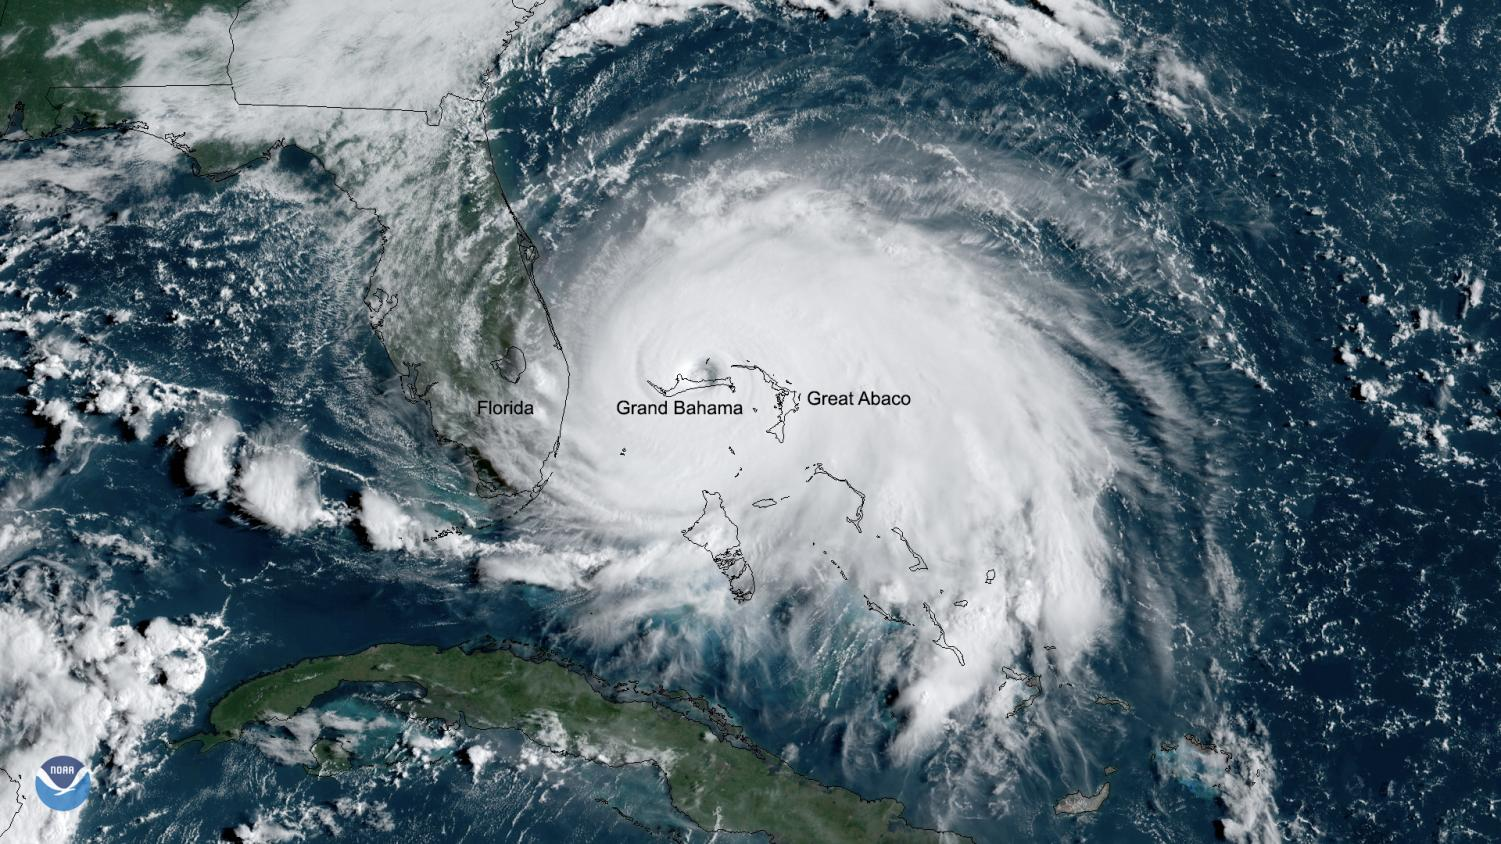 Satellite image of Hurricane Dorian as it sits over the Bahamas